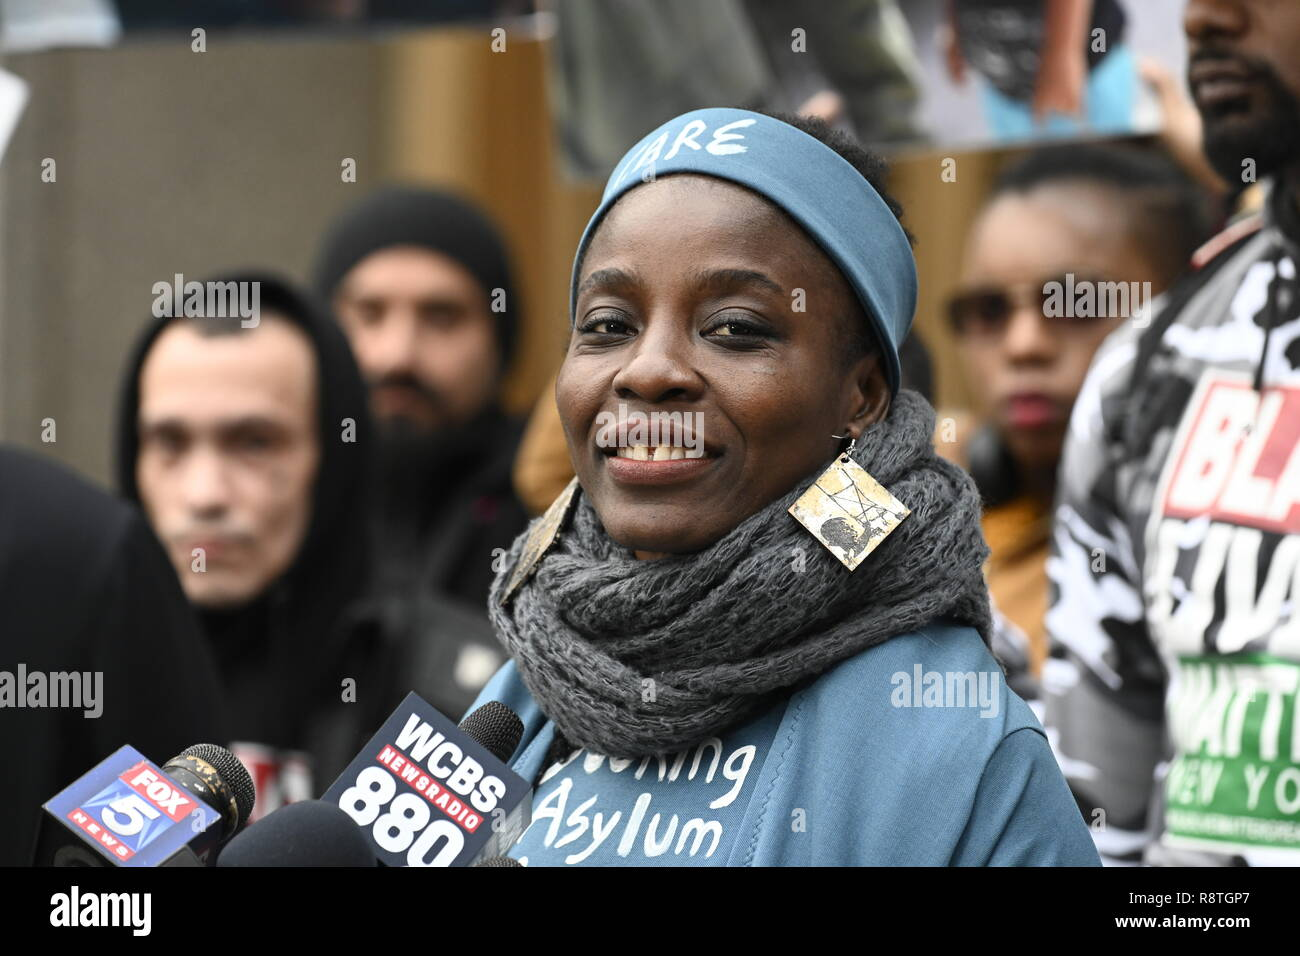 New York, USA. 17th Dec, 2018. New York, U.S., 17 December 2018 Statue of Liberty climber Patricia Okoumou speaks outside federal court following her conviction by a federal magistrate judge on misdemeanor charges of trespassing, disorderly conduct, and interfering with the functioning of government for her act of civil disobedience on July 4. Okoumou climbed the base of the statue to protest against Trump administration immigration policies. She is to be sentenced on March 5, 2019. Credit: Joseph Reid/Alamy Live News Stock Photo